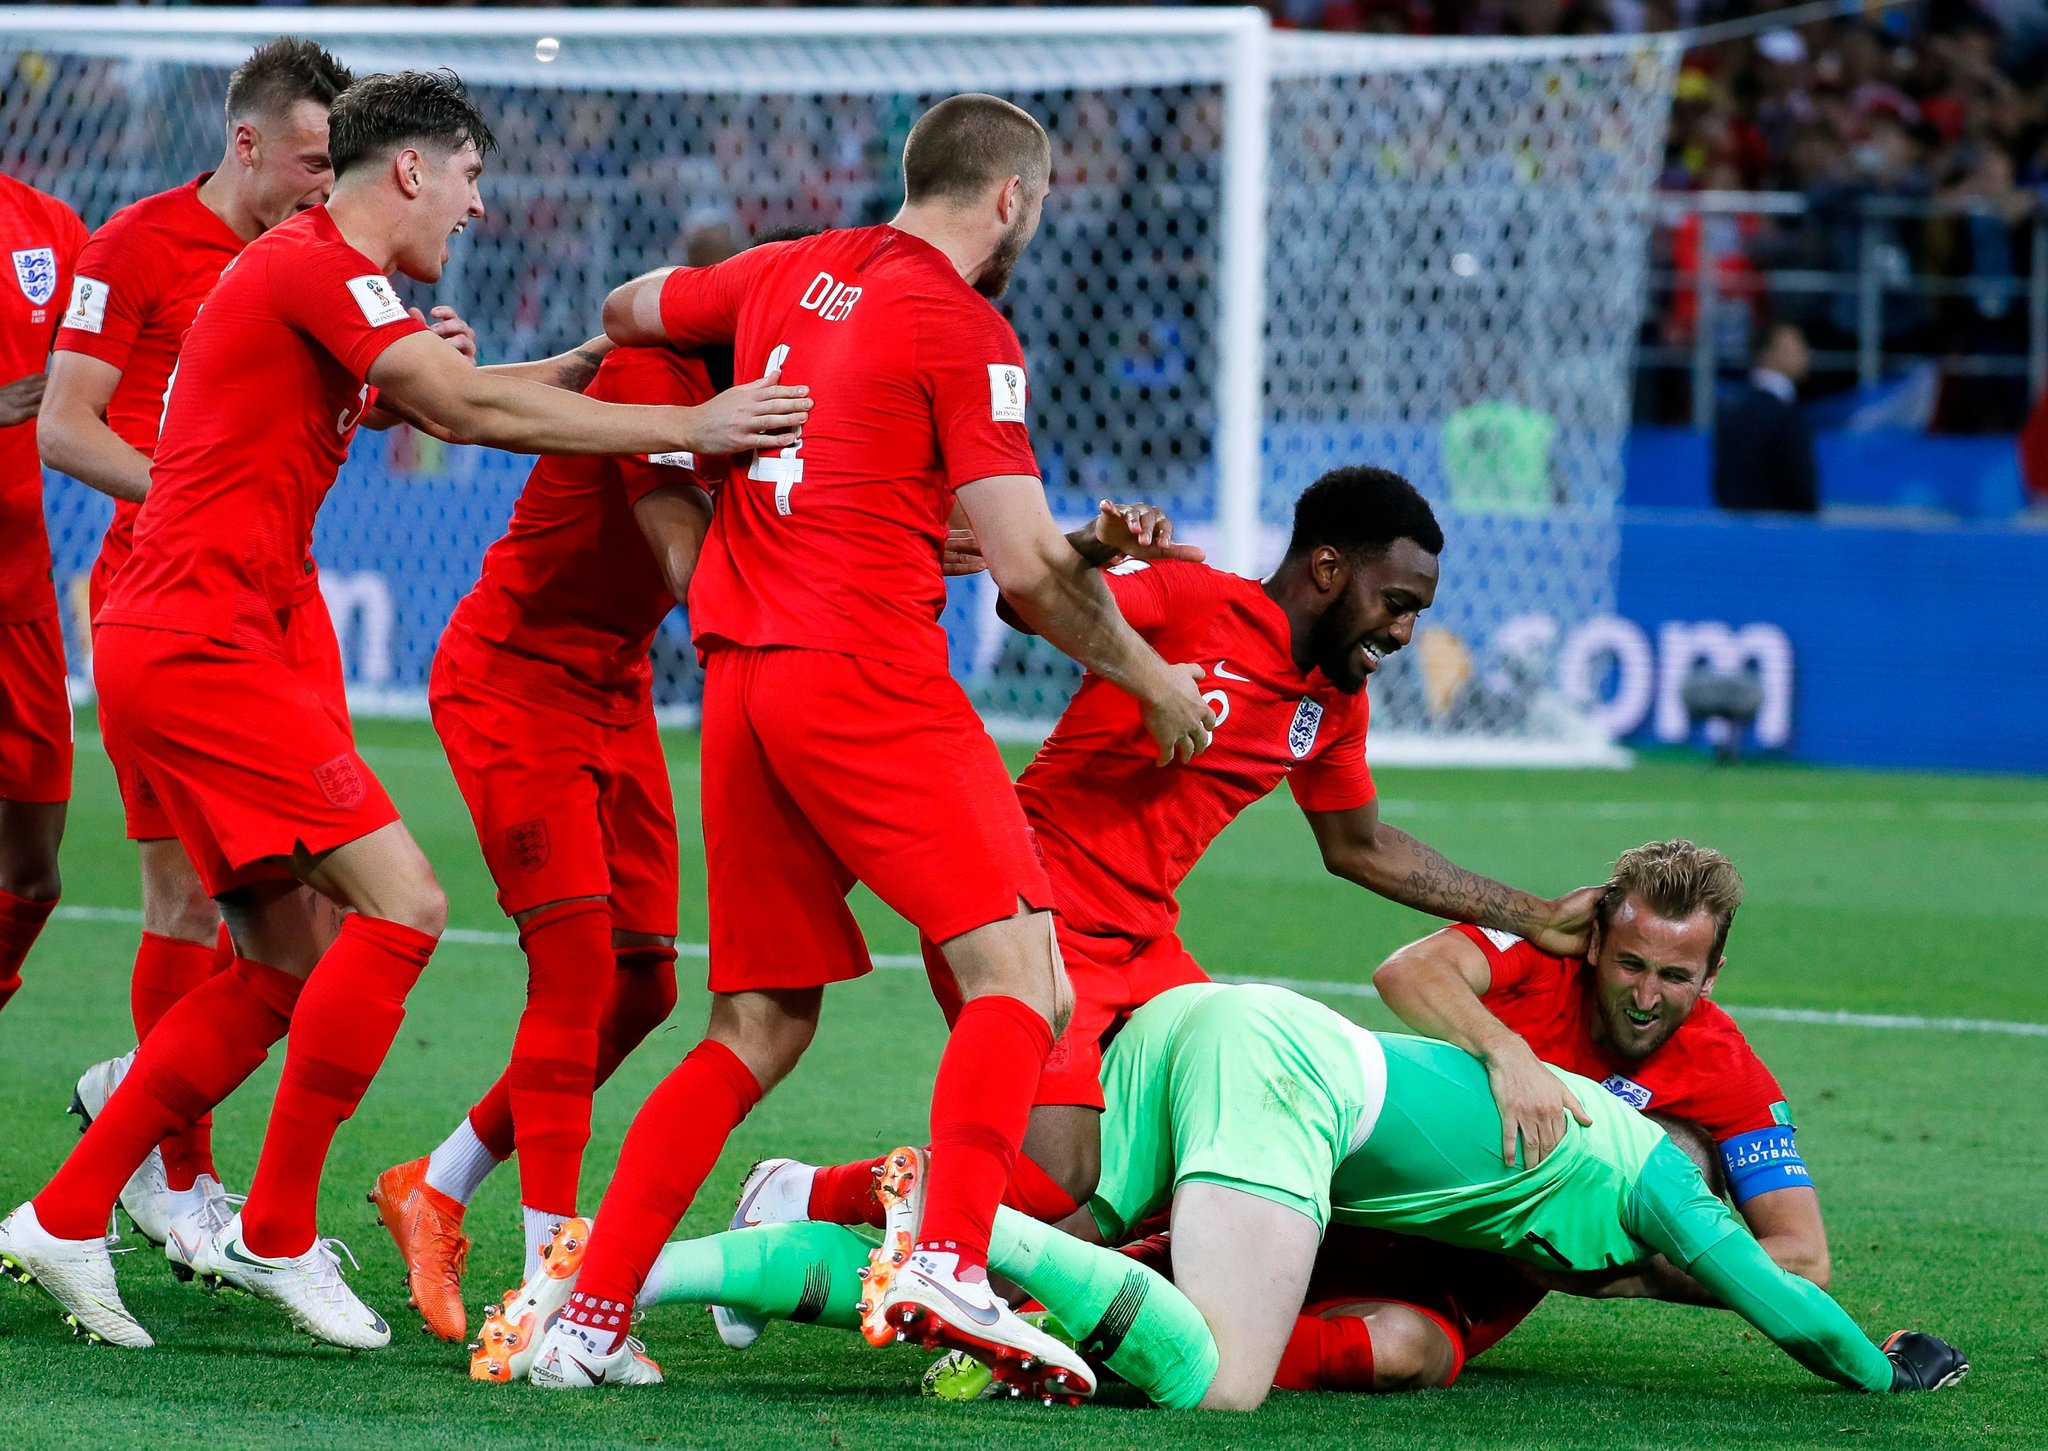 England's players celebrated after defeating Colombia in a penalty shootout. (Credit: Yuri Kochetkov/EPA, via Shutterstock)